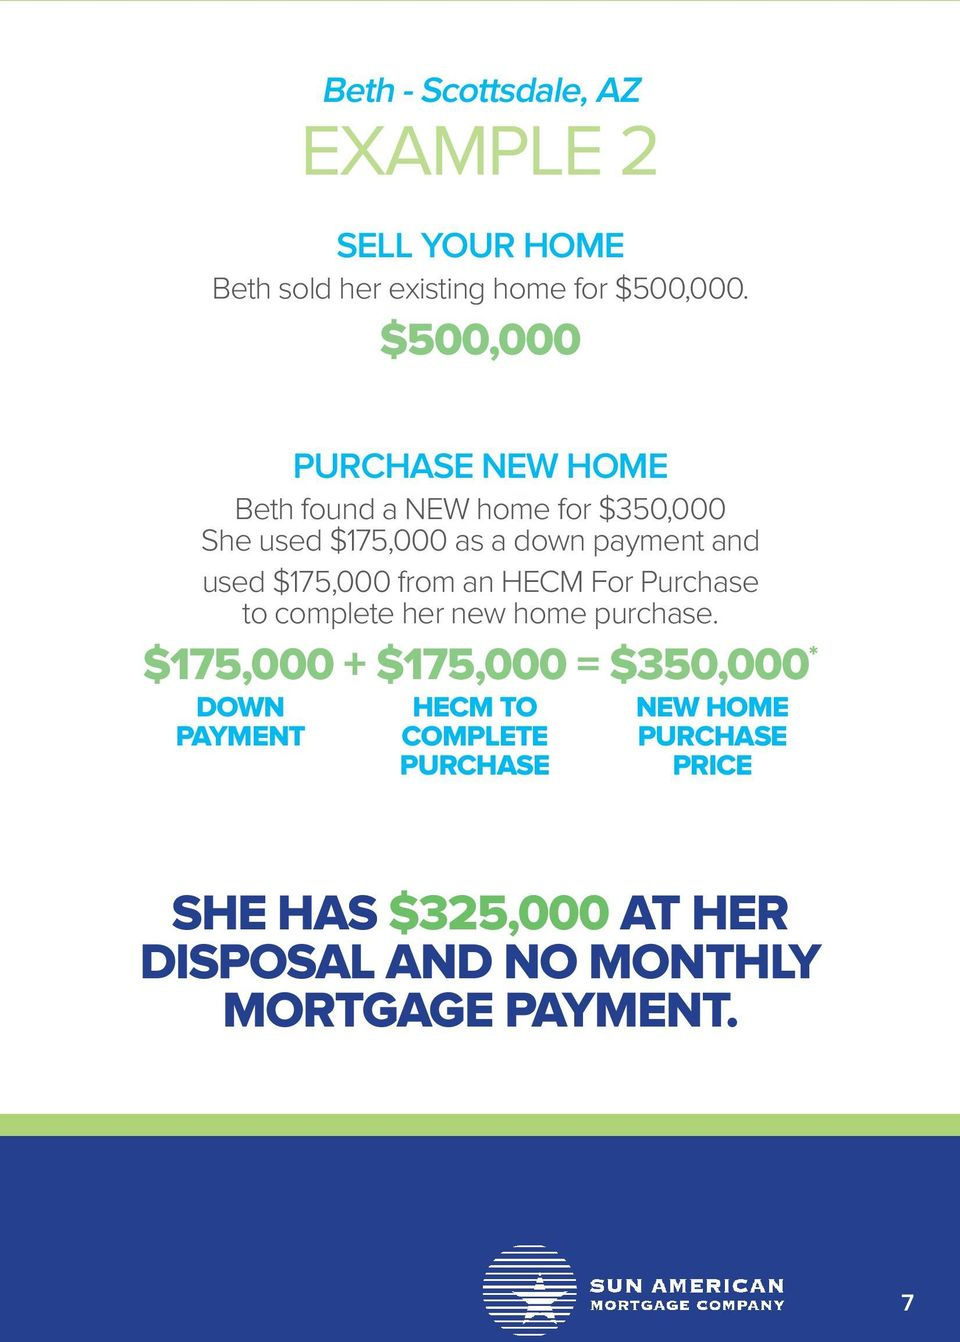 $175,000 from an HECM For Purchase to complete her new home purchase.